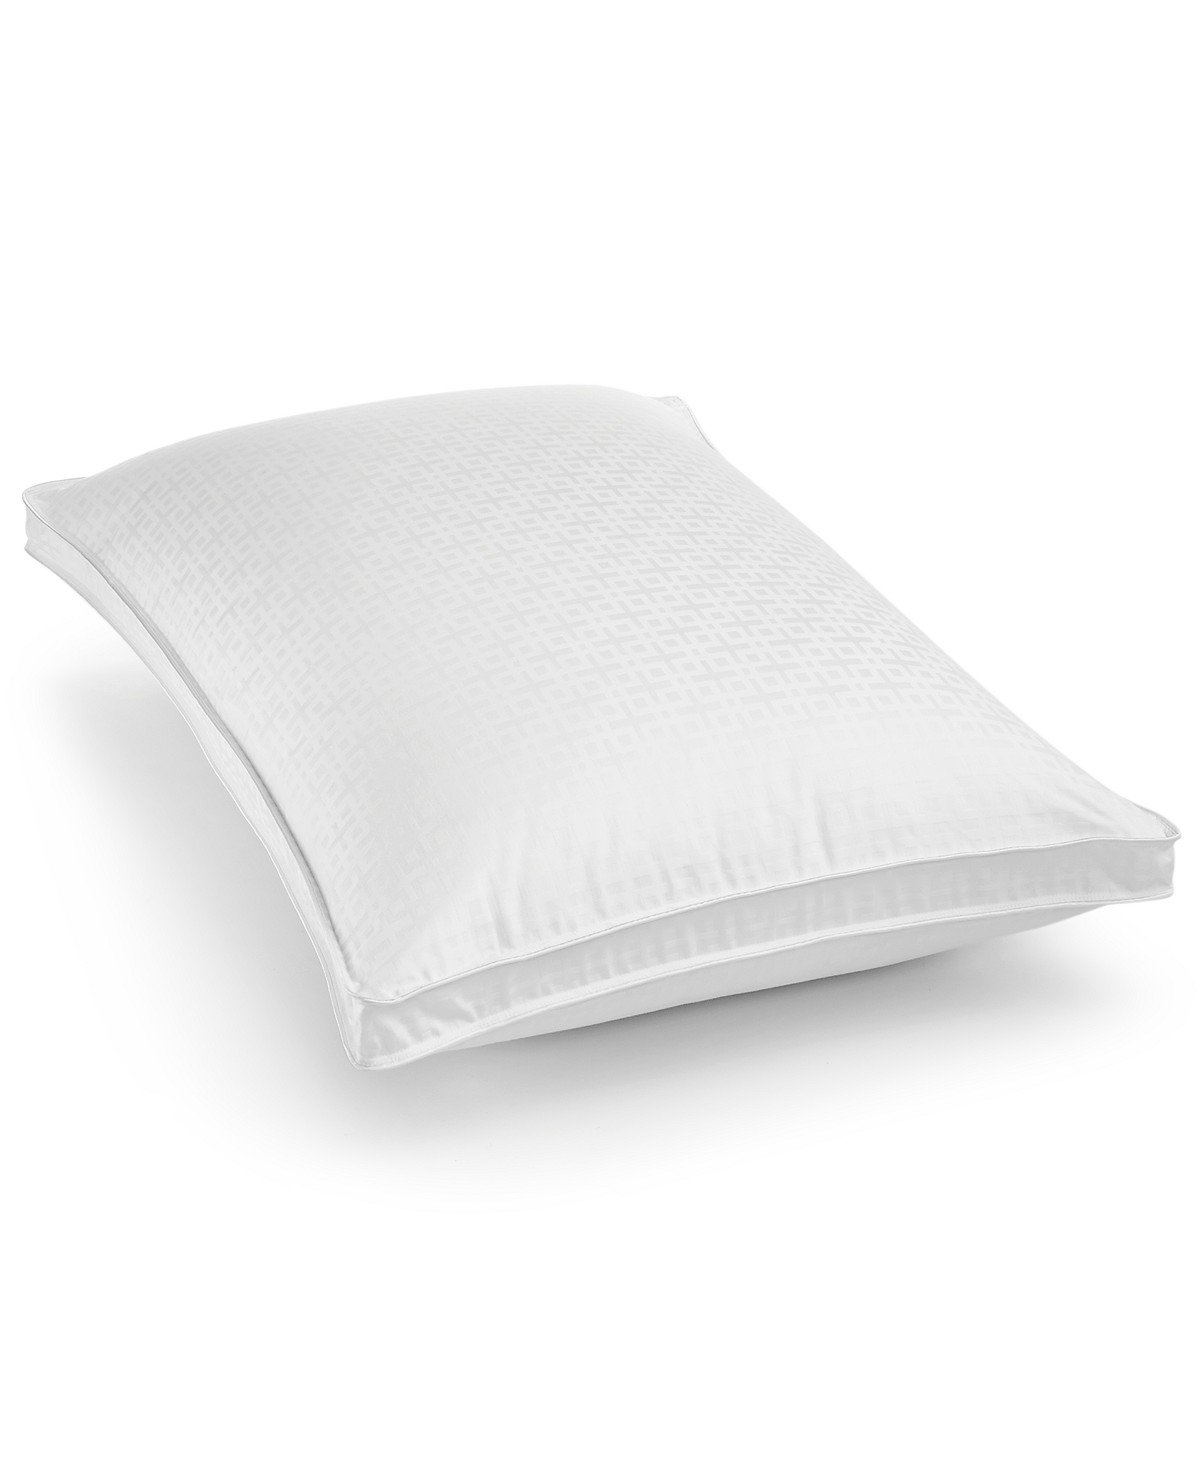 Hotel Collection European White Goose Down Standard Queen Medium Support Gusset Pillow for Back Sleepers